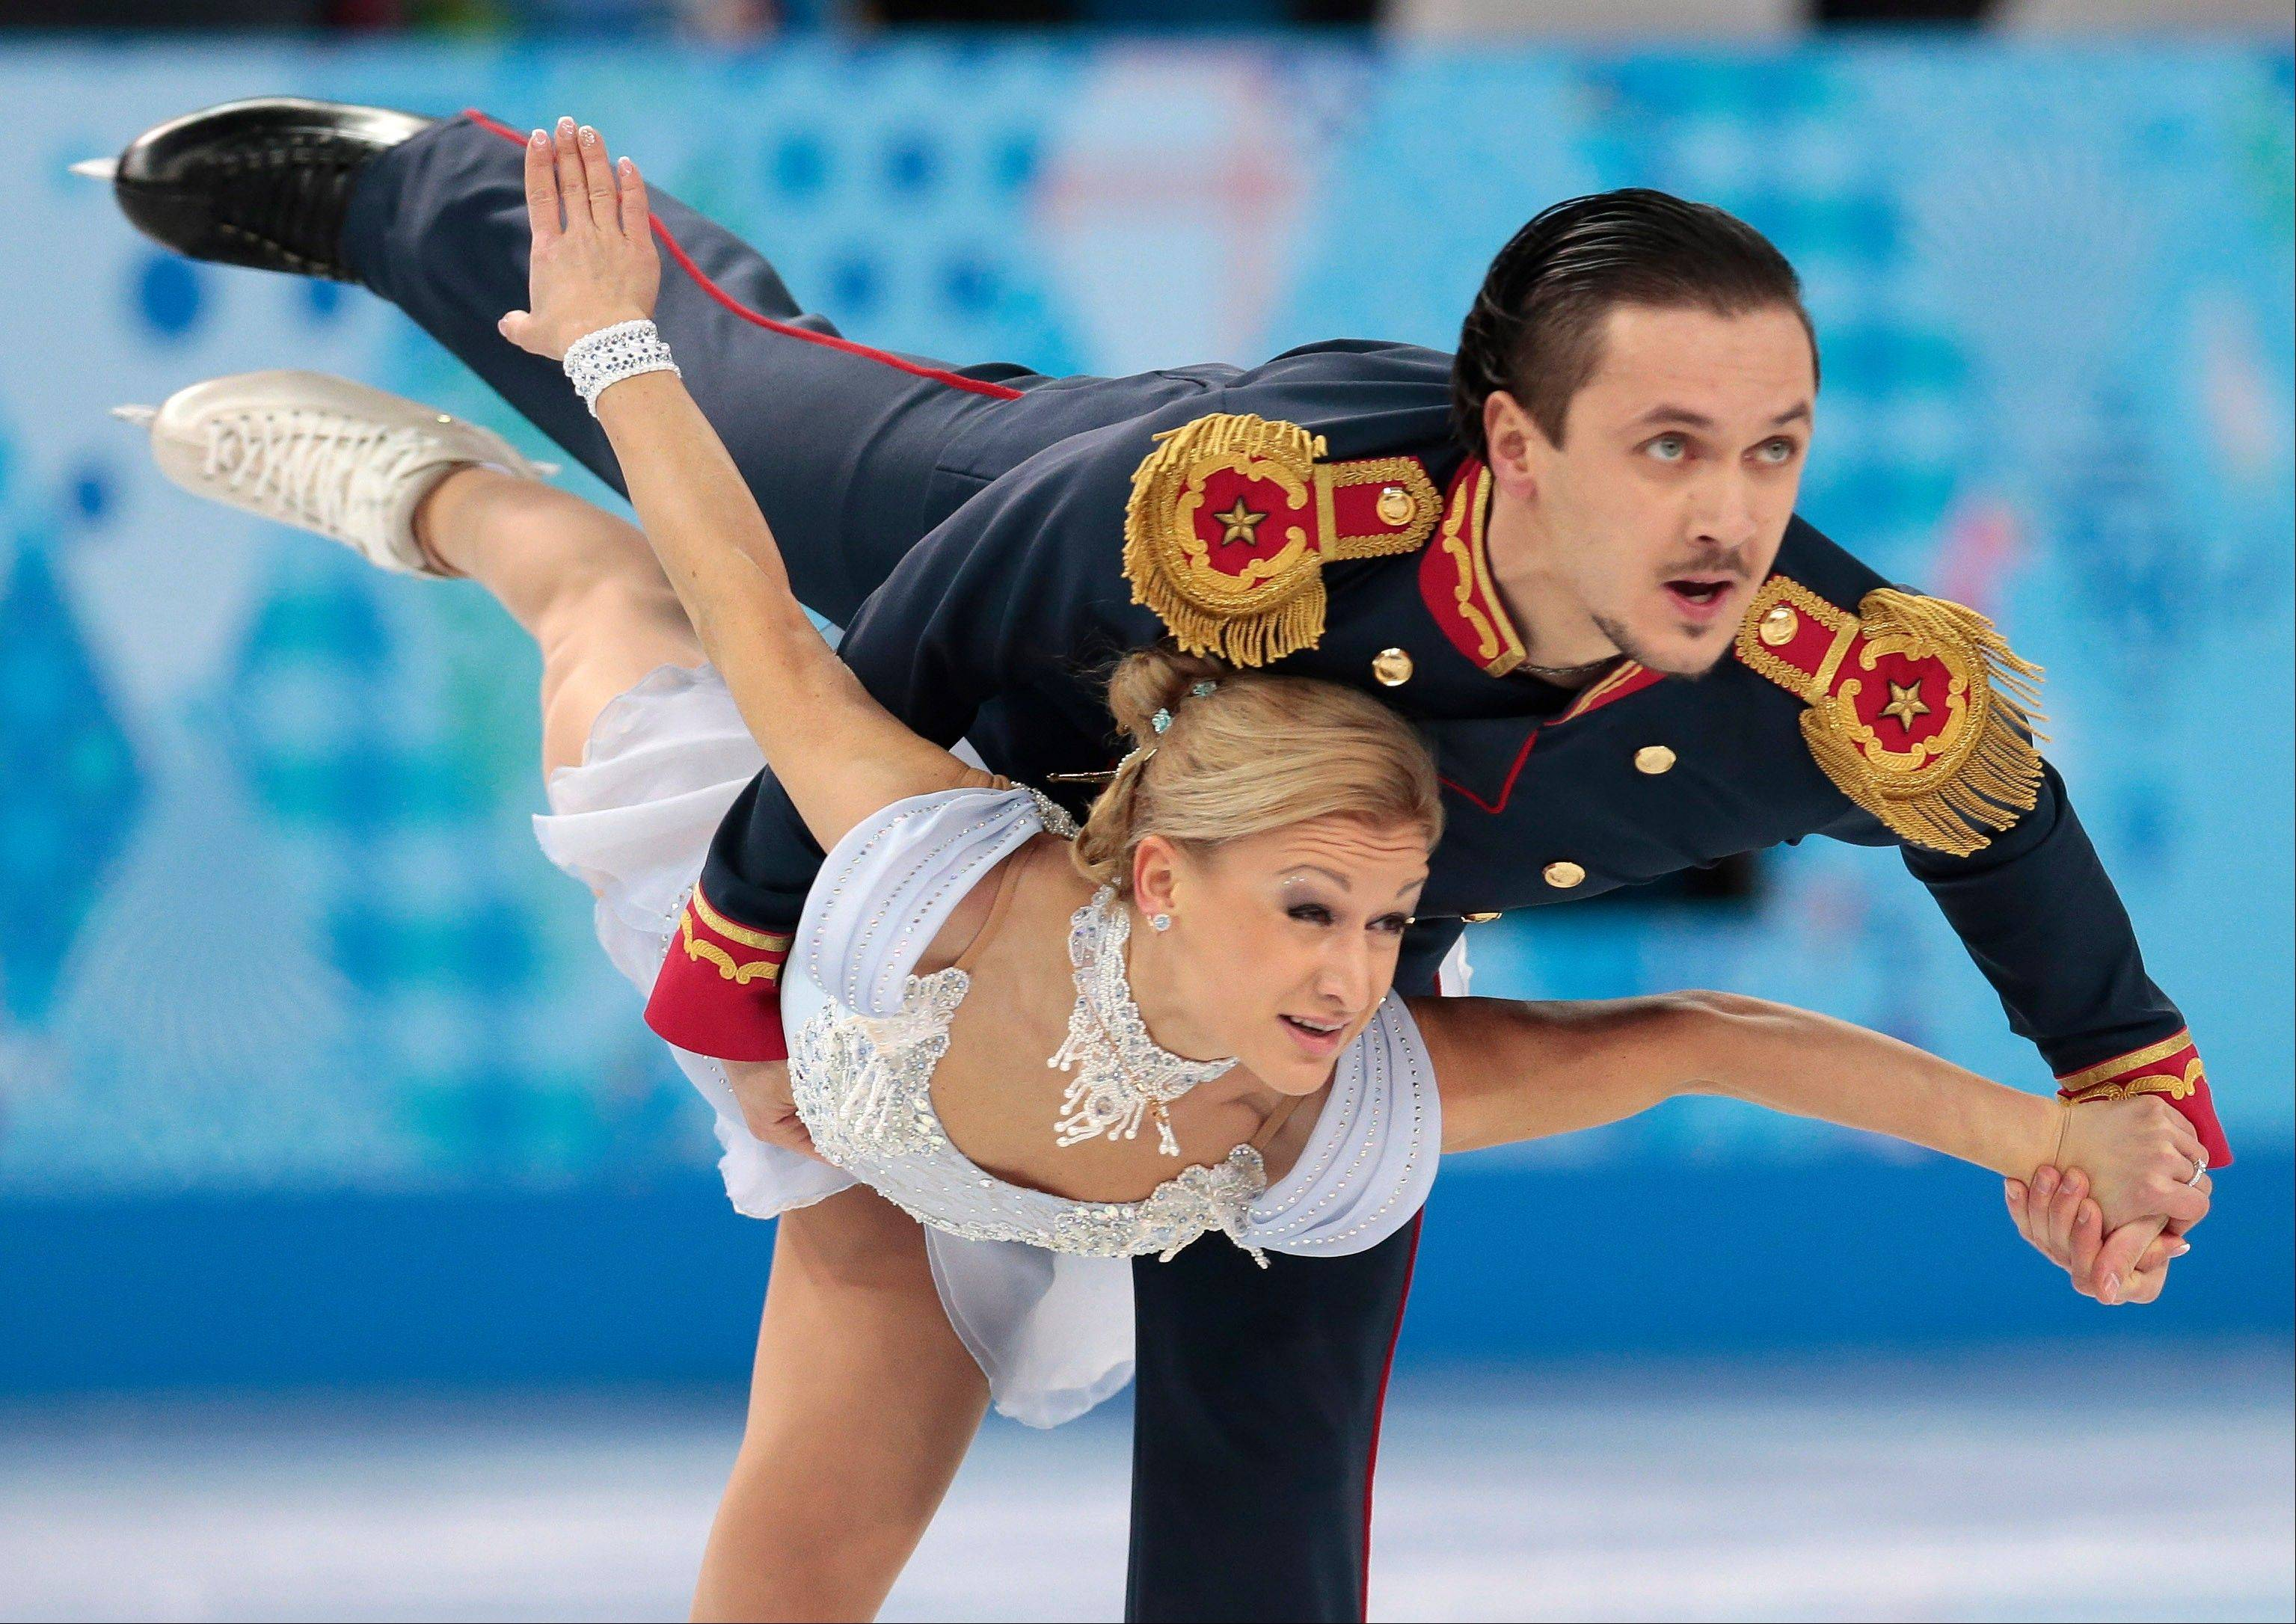 Tatiana Volosozhar and Maxim Trankov of Russia compete in the team pairs short program figure skating competition at the Iceberg Skating Palace during the 2014 Winter Olympics.